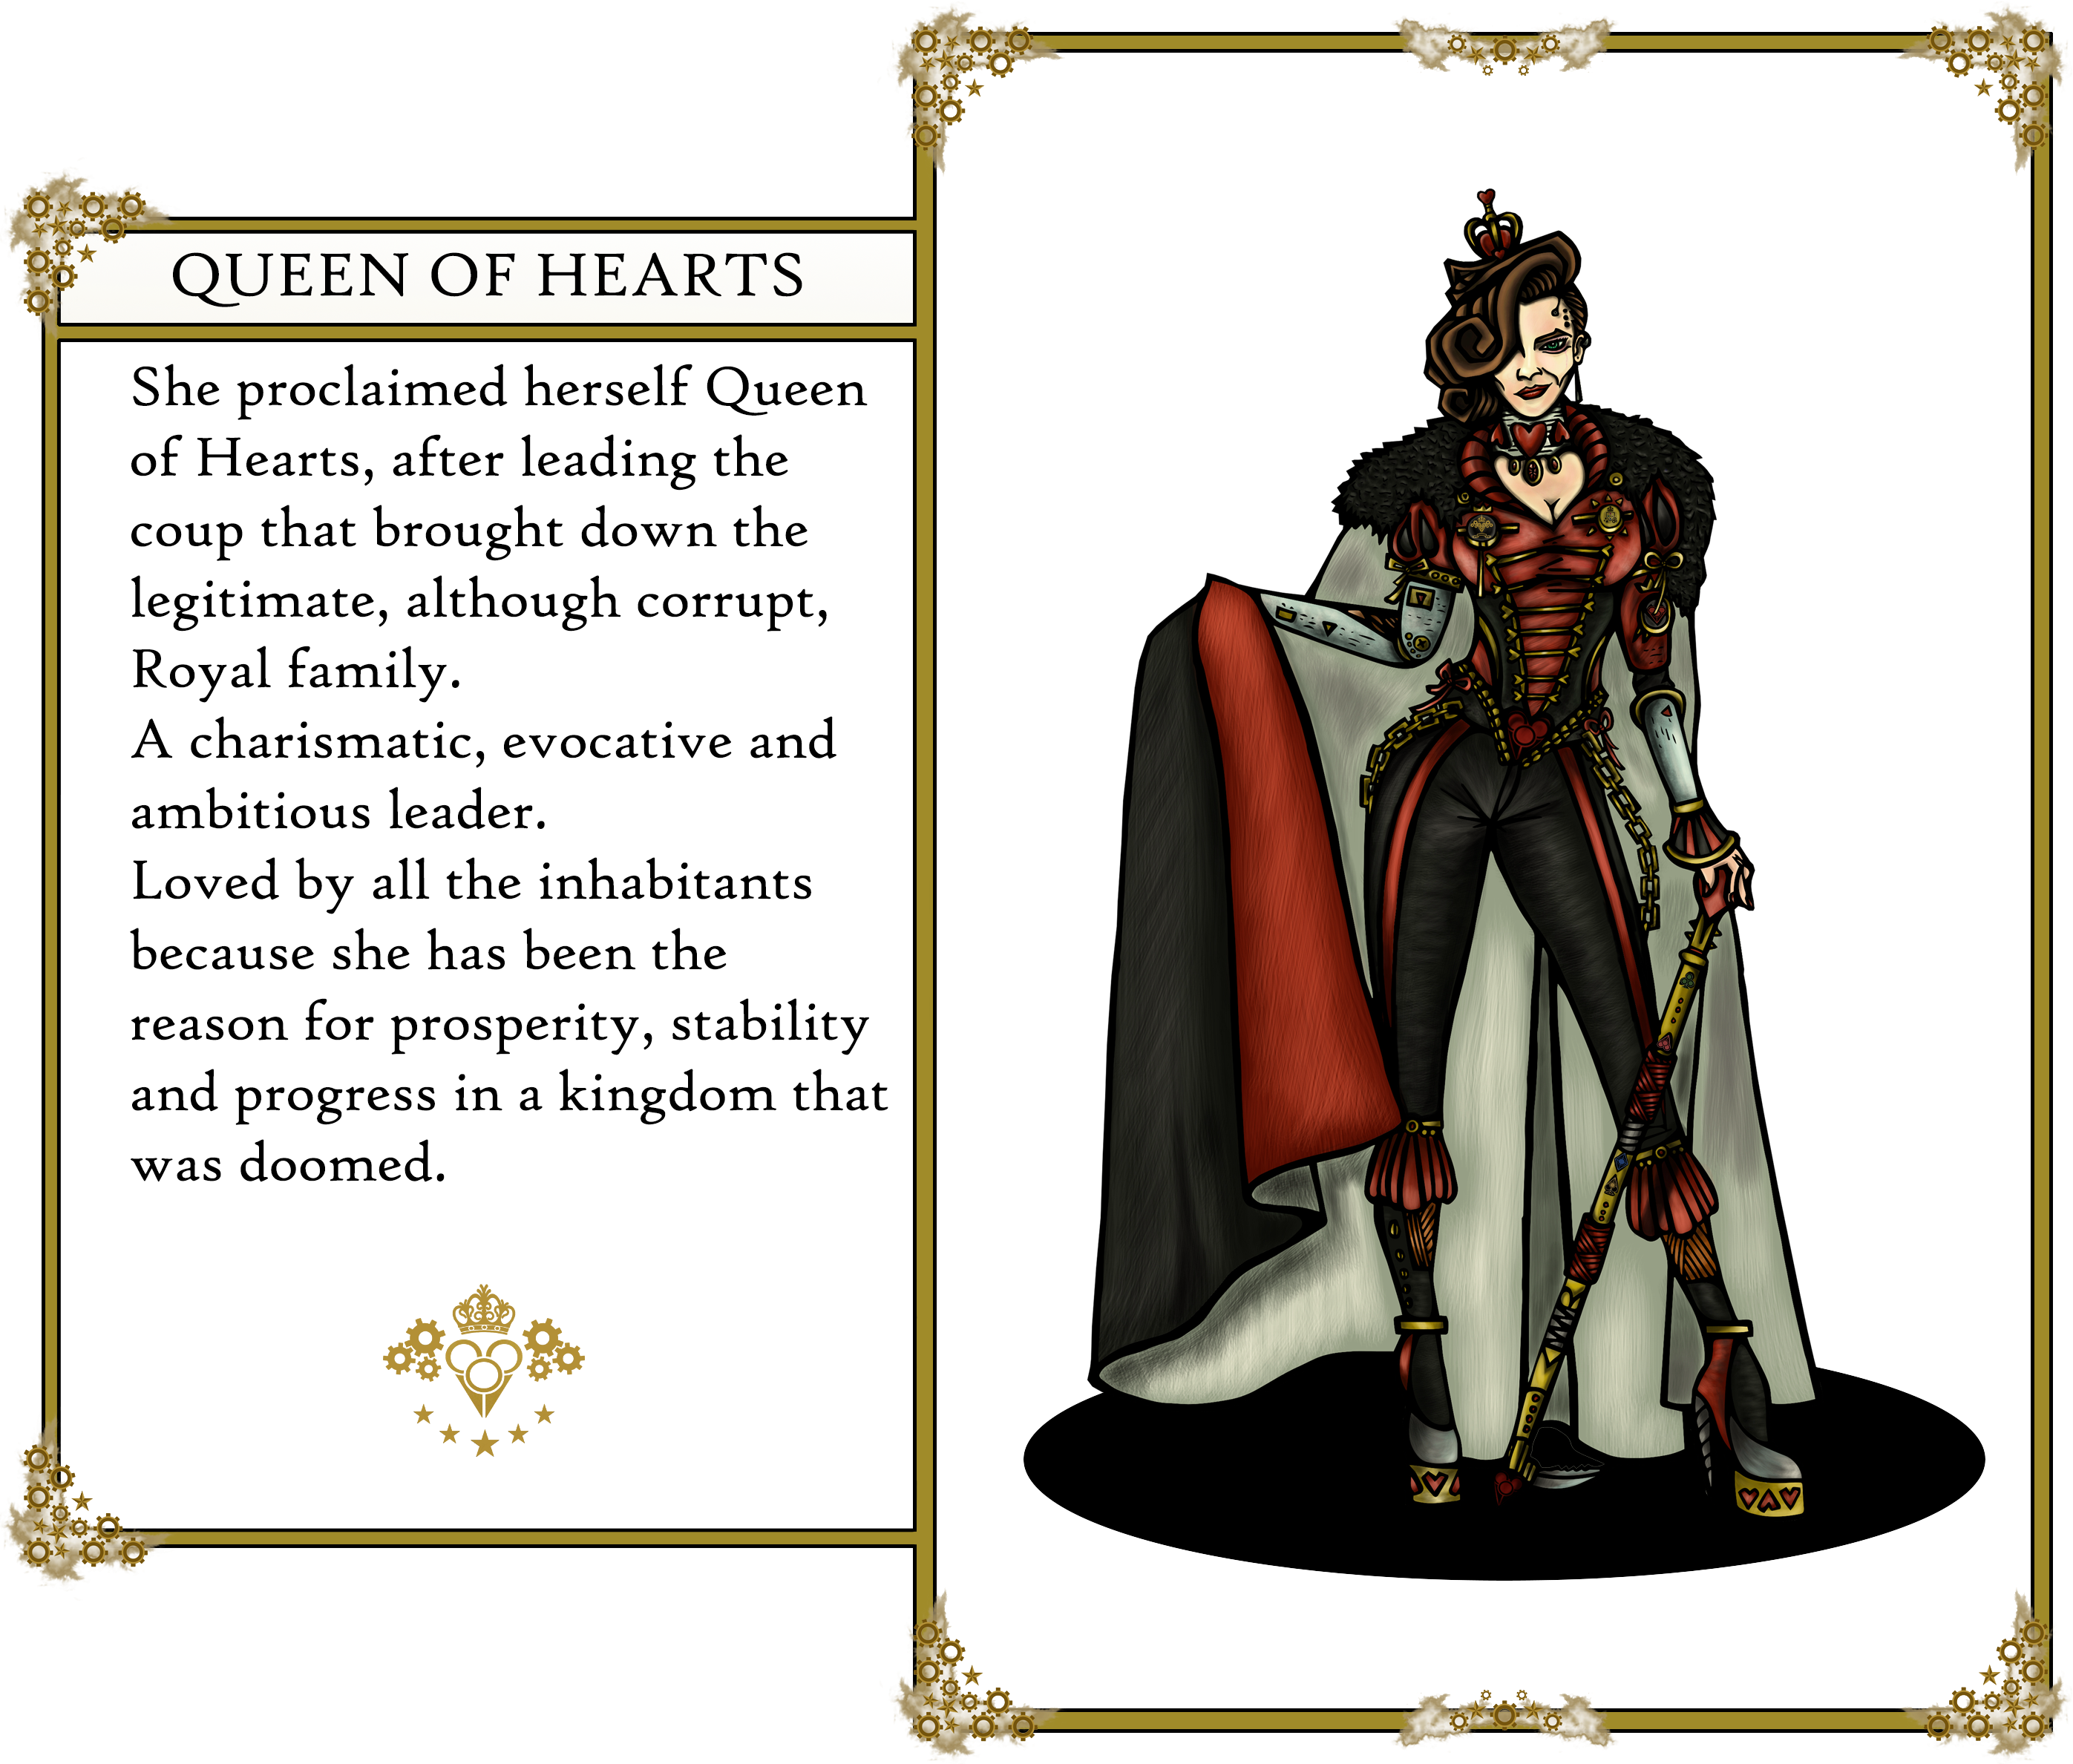 The Oz's tales. Queen of Hearts:                          She proclaimed herself Queen of Hearts, after leading the coup that brought down the legitimate, although corrupt, Royal family.                          A charismatic, evocative and ambitious leader. Loved by all the inhabitants because she has been the reason for prosperity,                          stability and progress in a kingdom that was doomed.